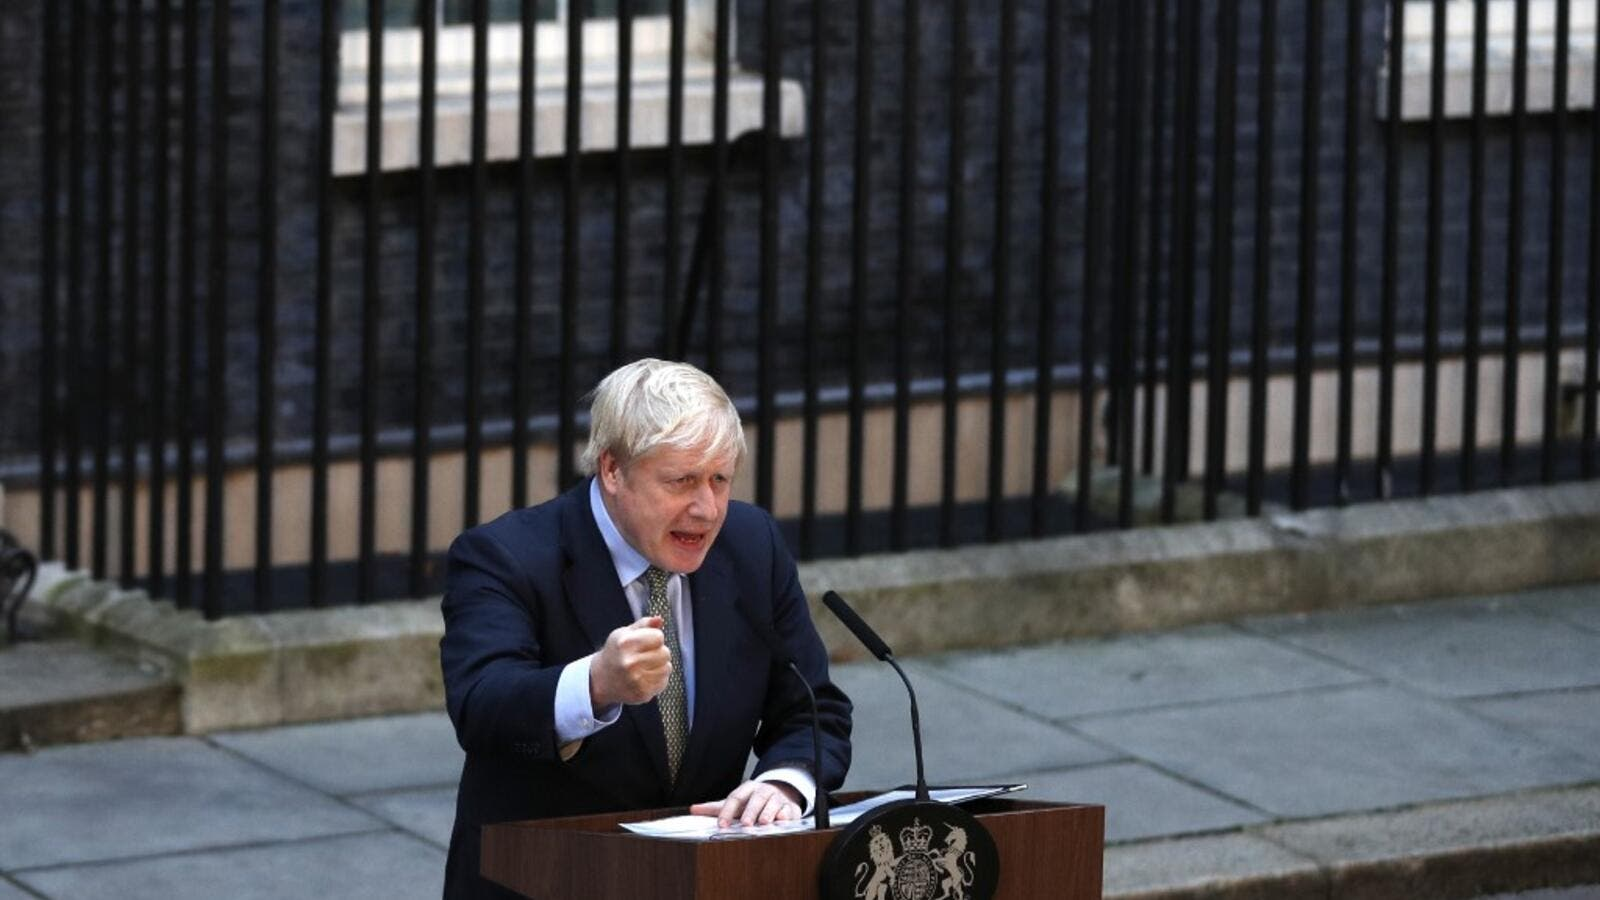 Britain's Prime Minister Boris Johnson delivers a speech outside 10 Downing Street in central London on December 13, 2019, following his Conservative party's general election victory. AFP